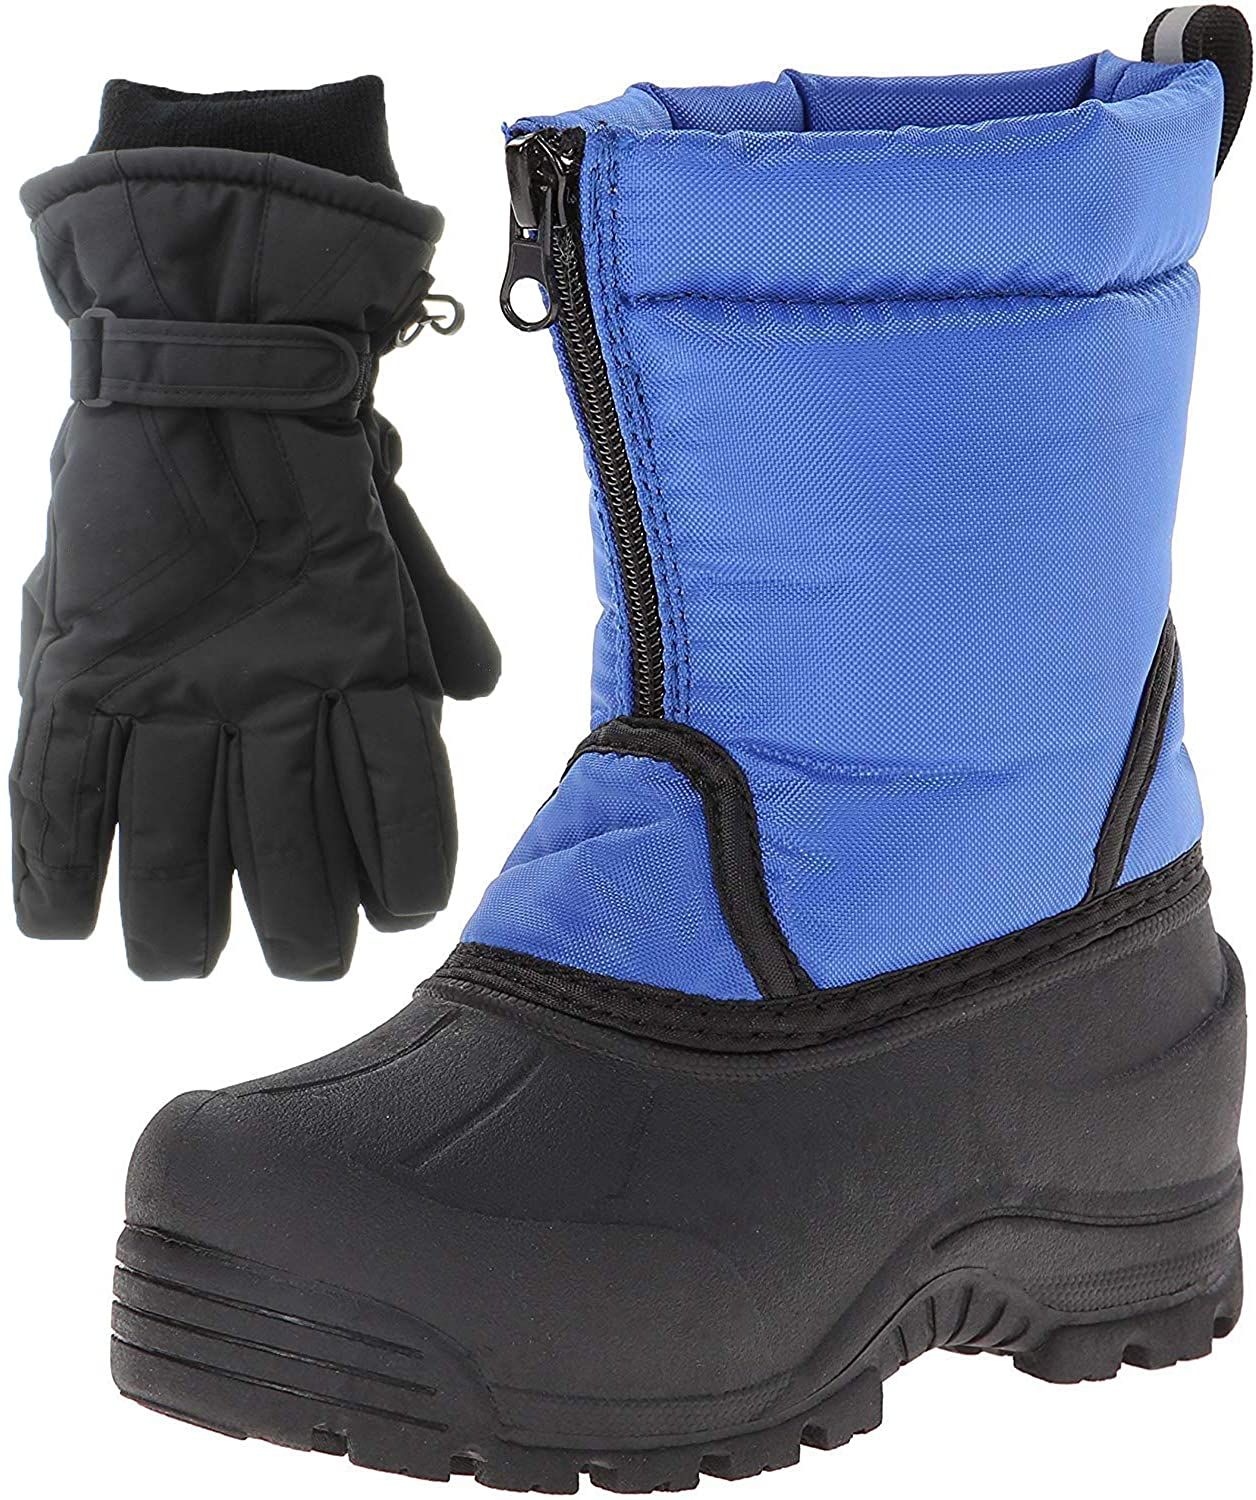 Northside Icicle Winter Snow Boots for Boys with Matching Waterproof Gloves, Size: 3 M US Little Kid - Royal Blue (Blue)